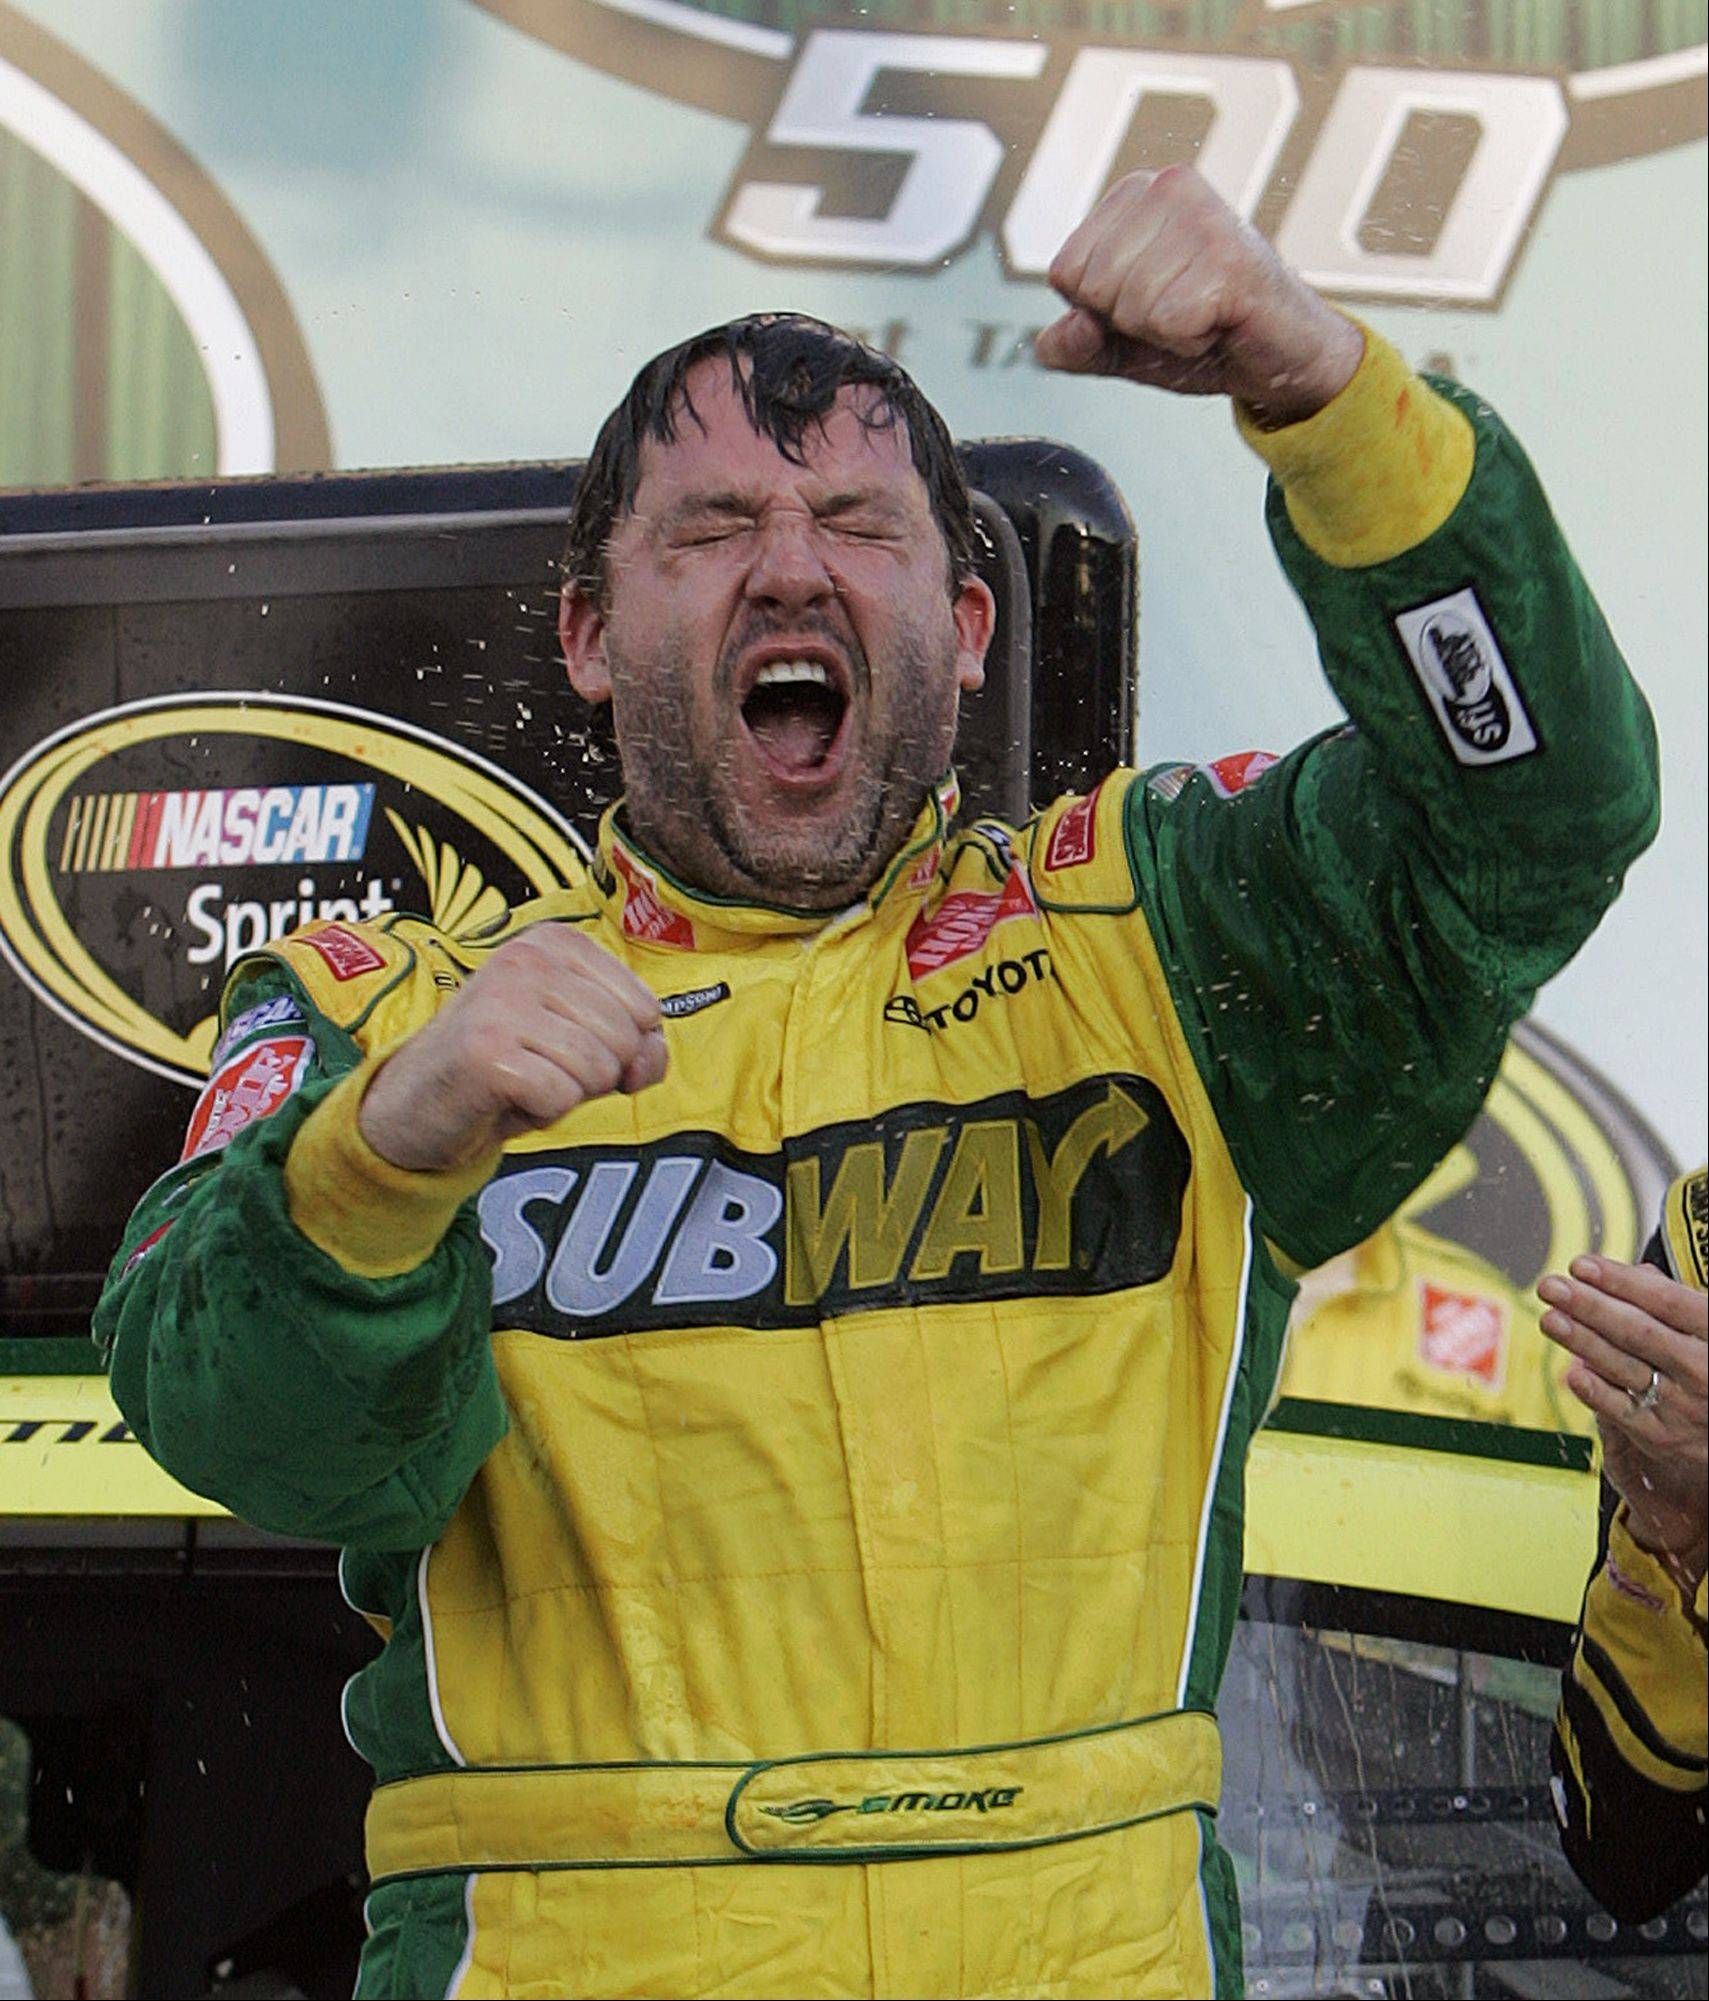 Tony Stewart reacts in victory lane after winning the NASCAR Sprint Cup Series� AMP Energy 500 auto race at Talladega Superspeedway in Talladega, Ala., in 2008.